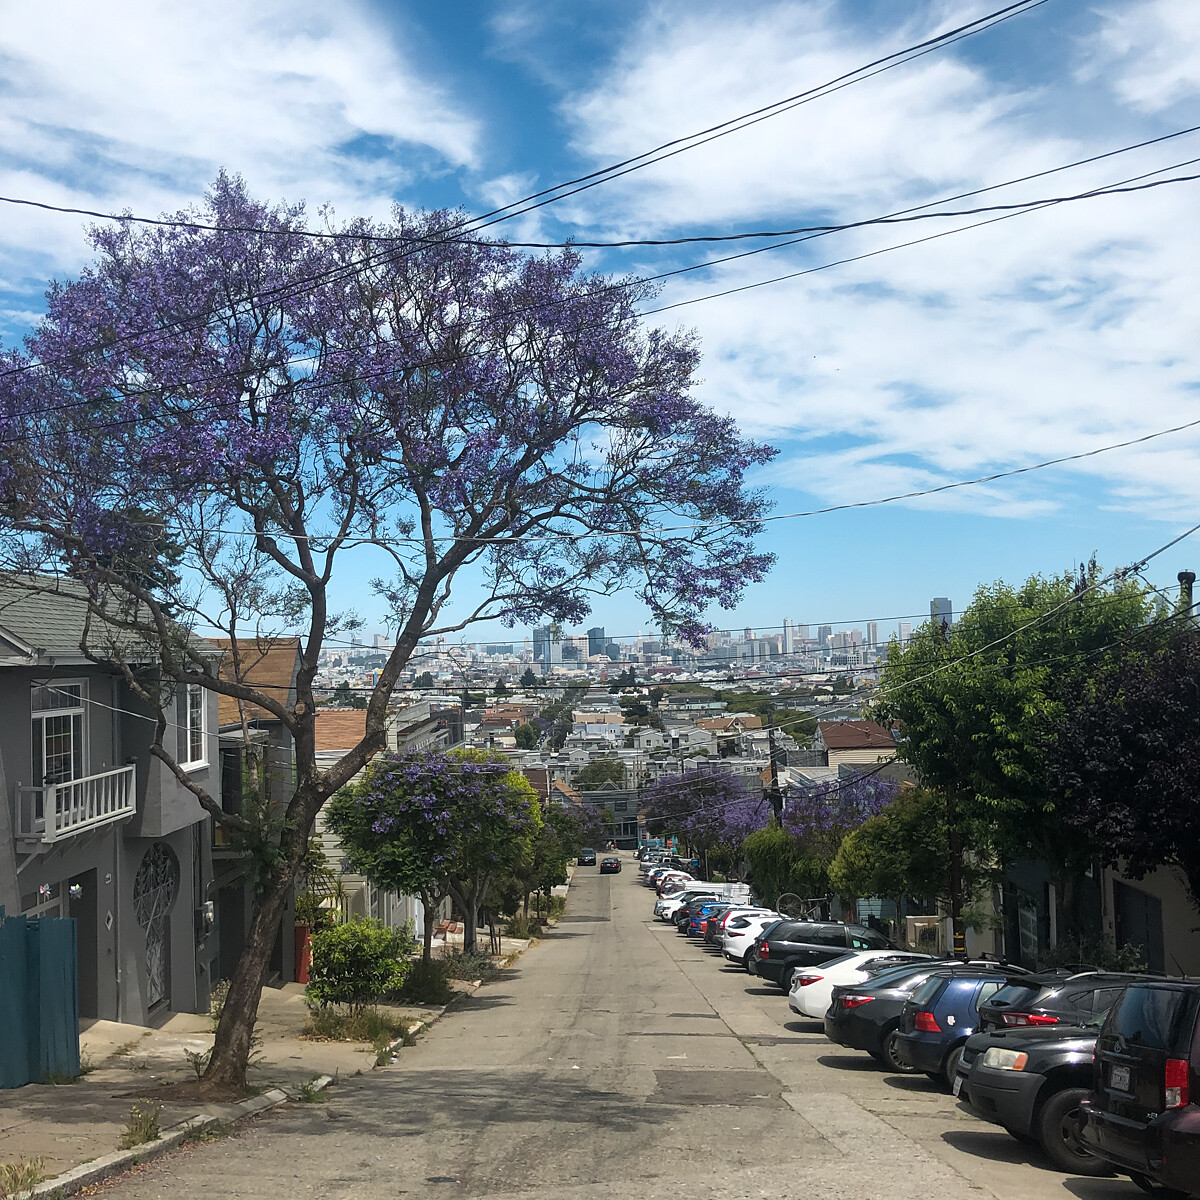 A large purple flowering jacaranda tree shades a hilly street in San Francisco. The city skyline fills the horizon below.